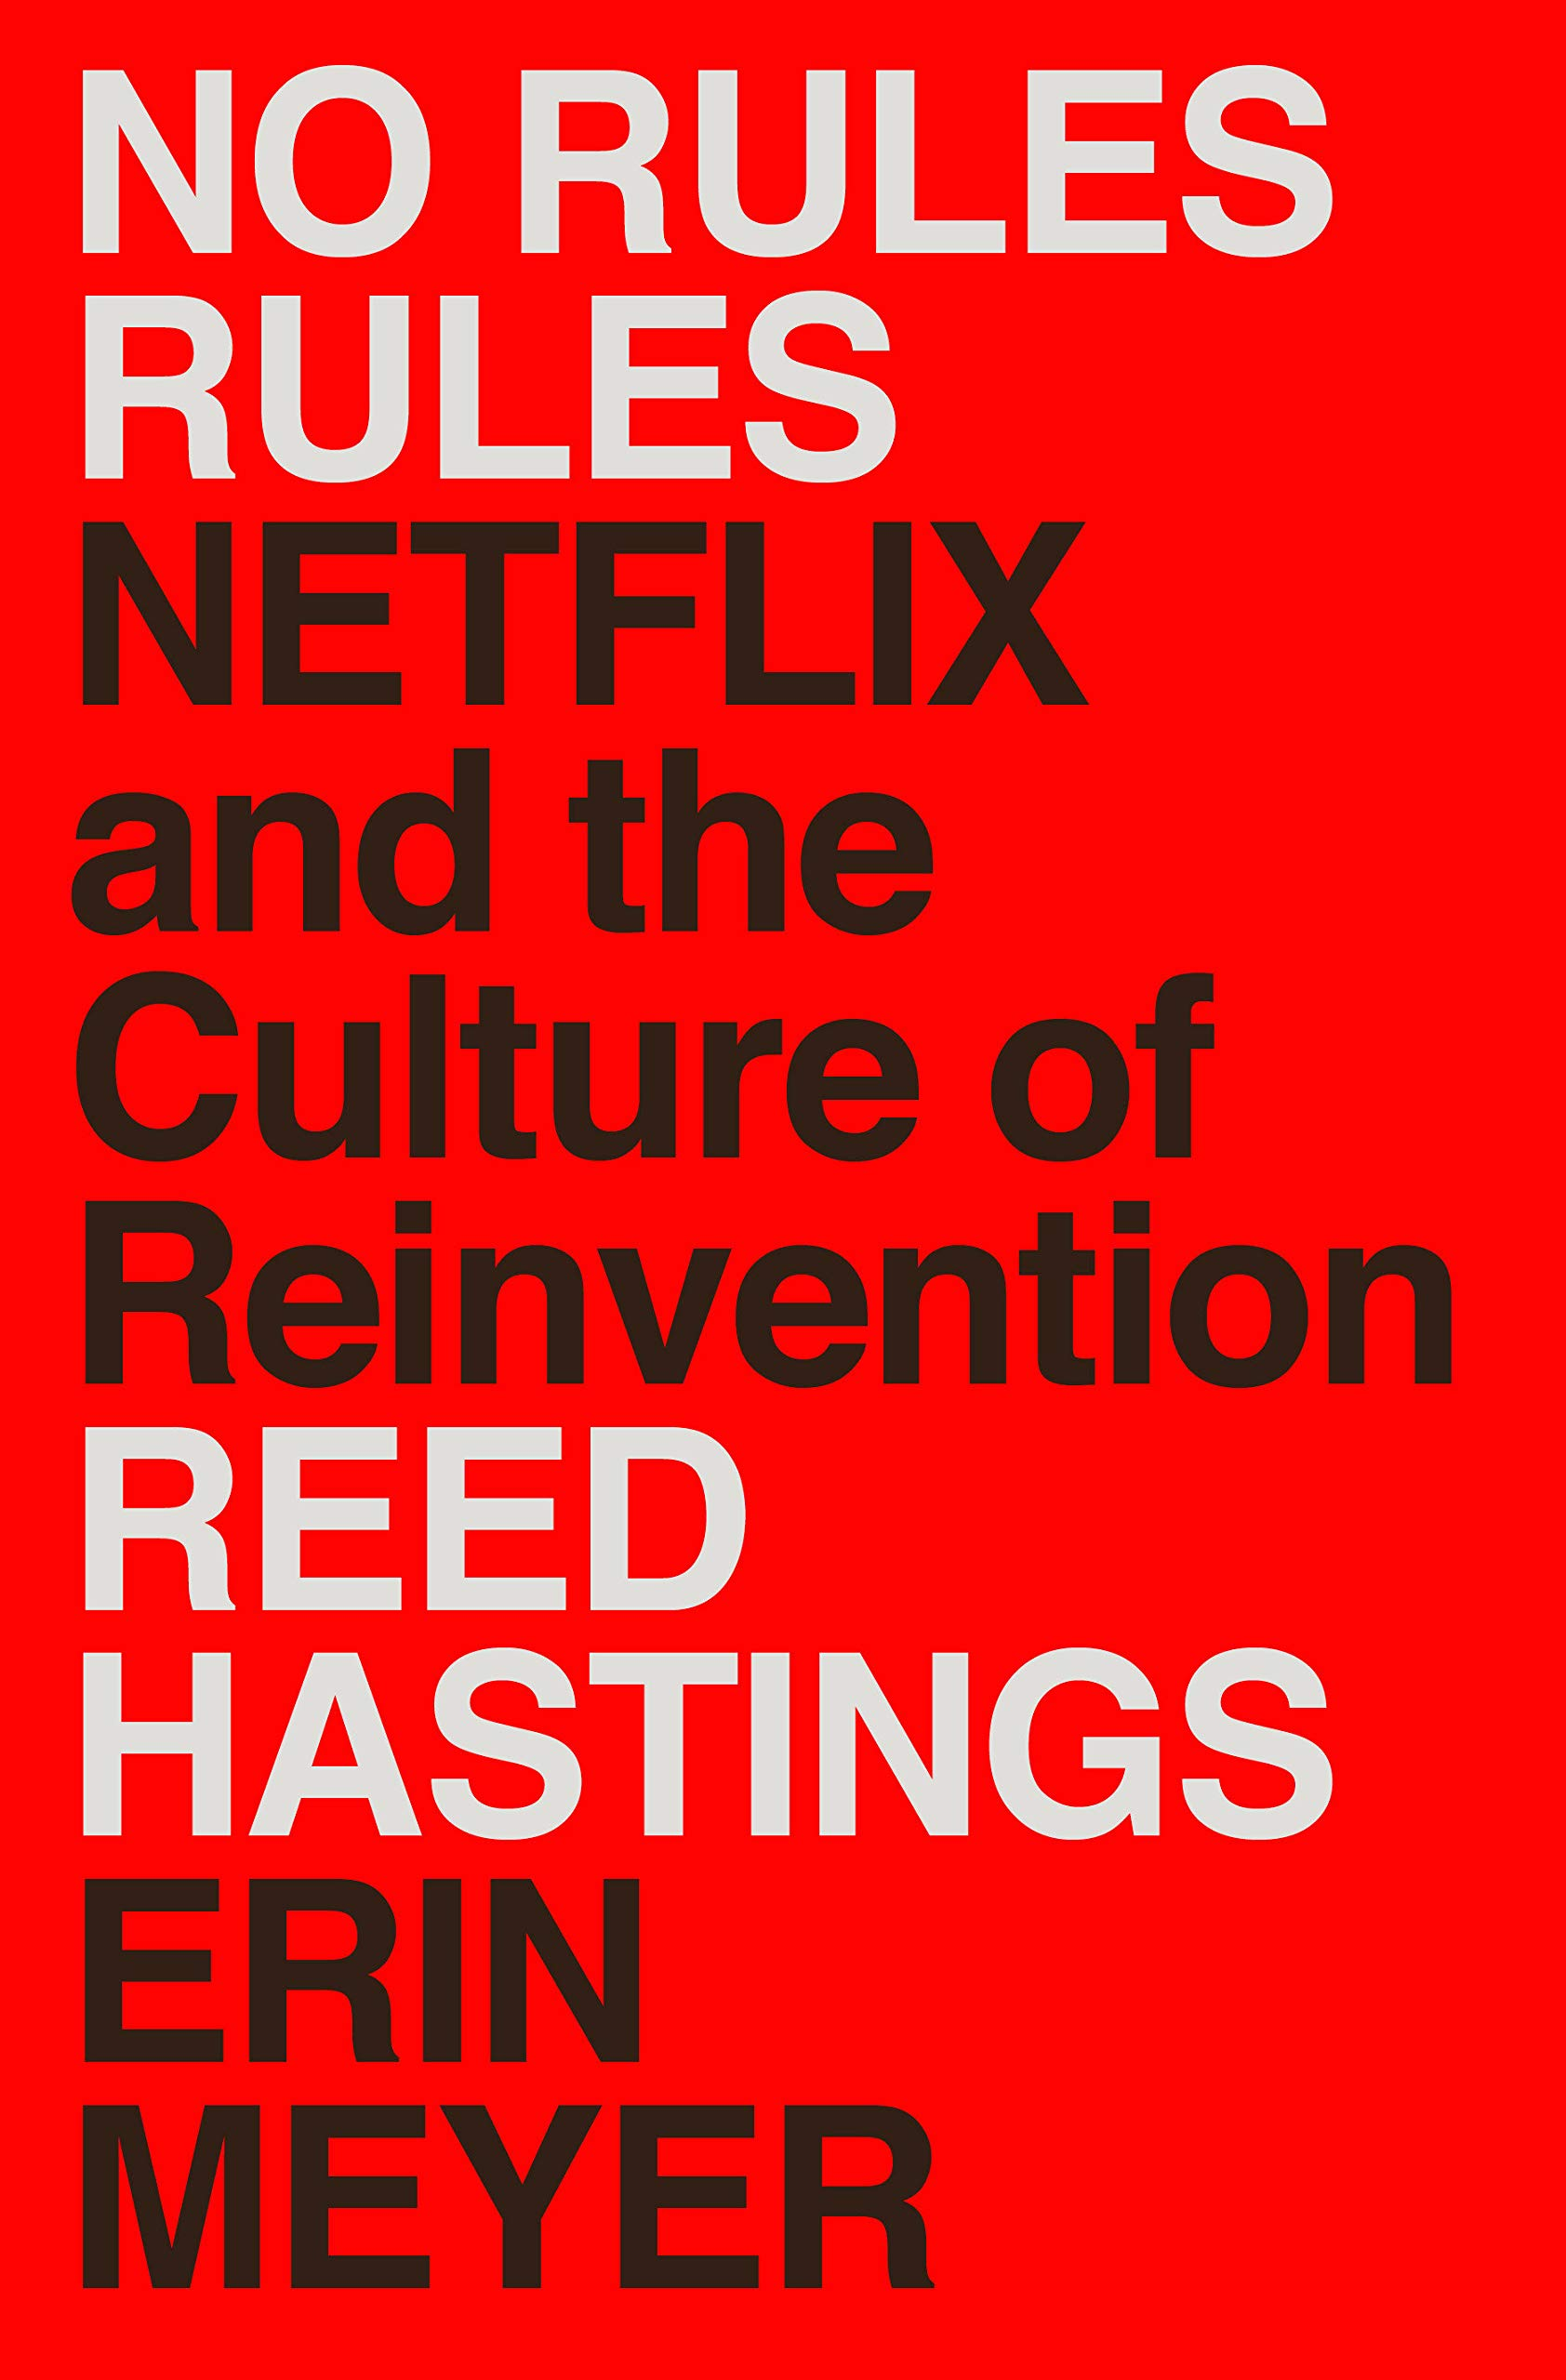 No Rules Rules: Netflix and the Culture of Reinvention - Amazon.com